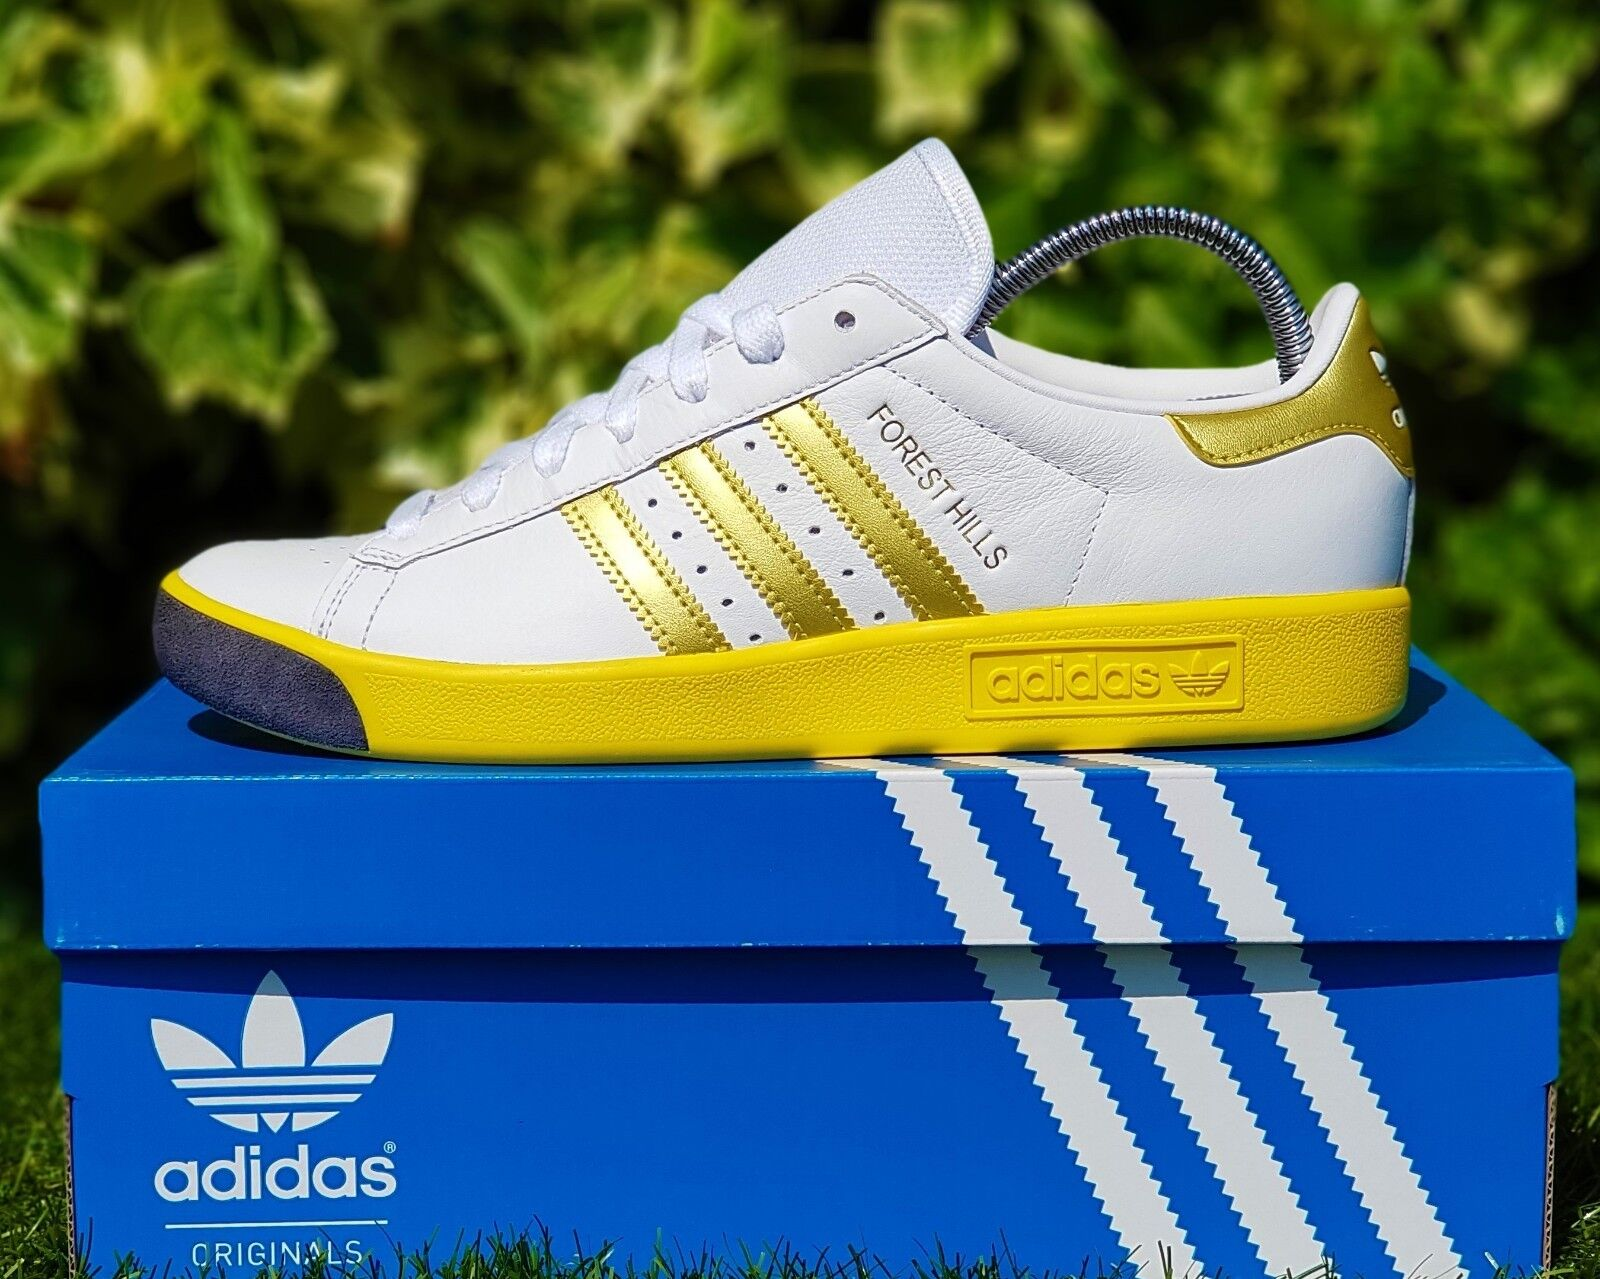 BNWB & Genuine adidas originals ® Trainers Forest Hills Retro Weiß Trainers ® UK Größe 10.5 c81f21